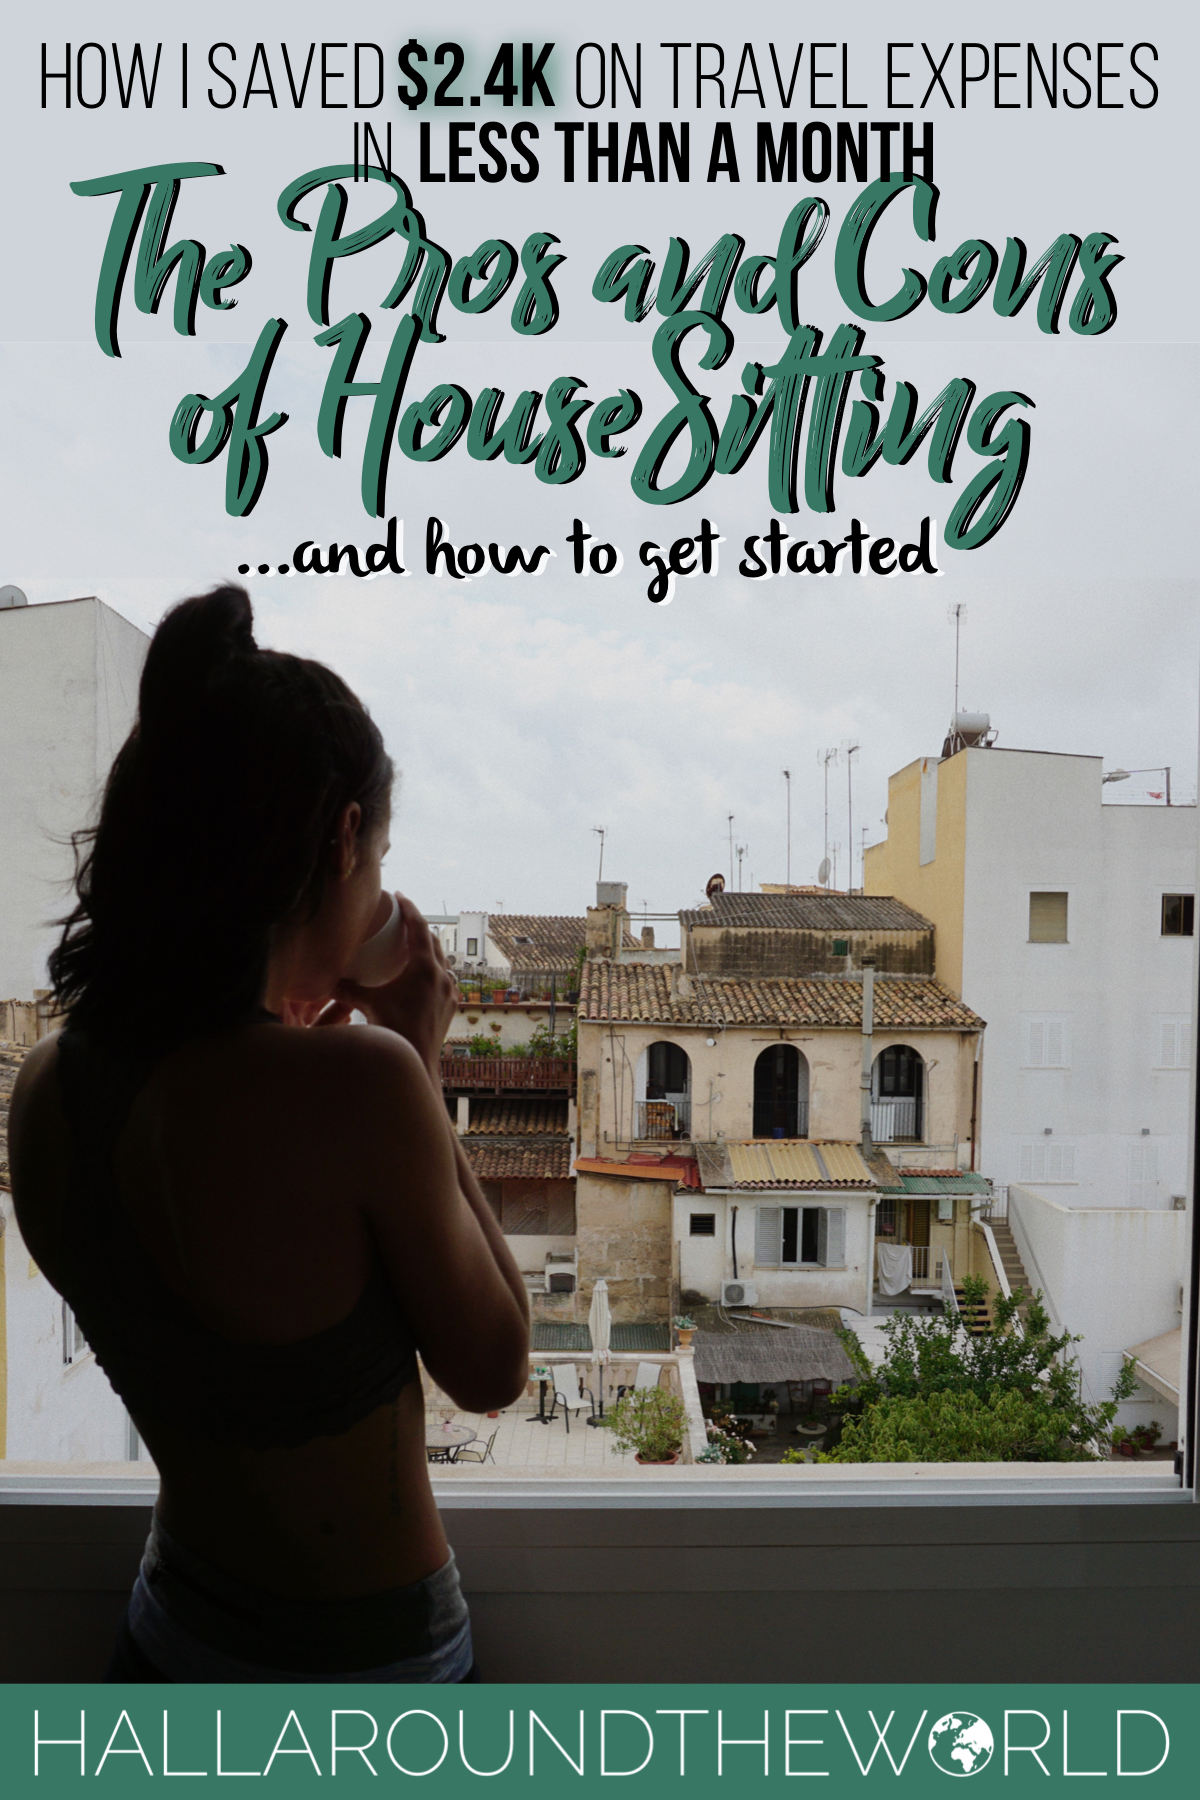 How I Saved $2.4K on Travel Expenses by HouseSitting with TrustedHouseSitters: The Pros and Cons + How To Get Started   HallAroundtheWorld